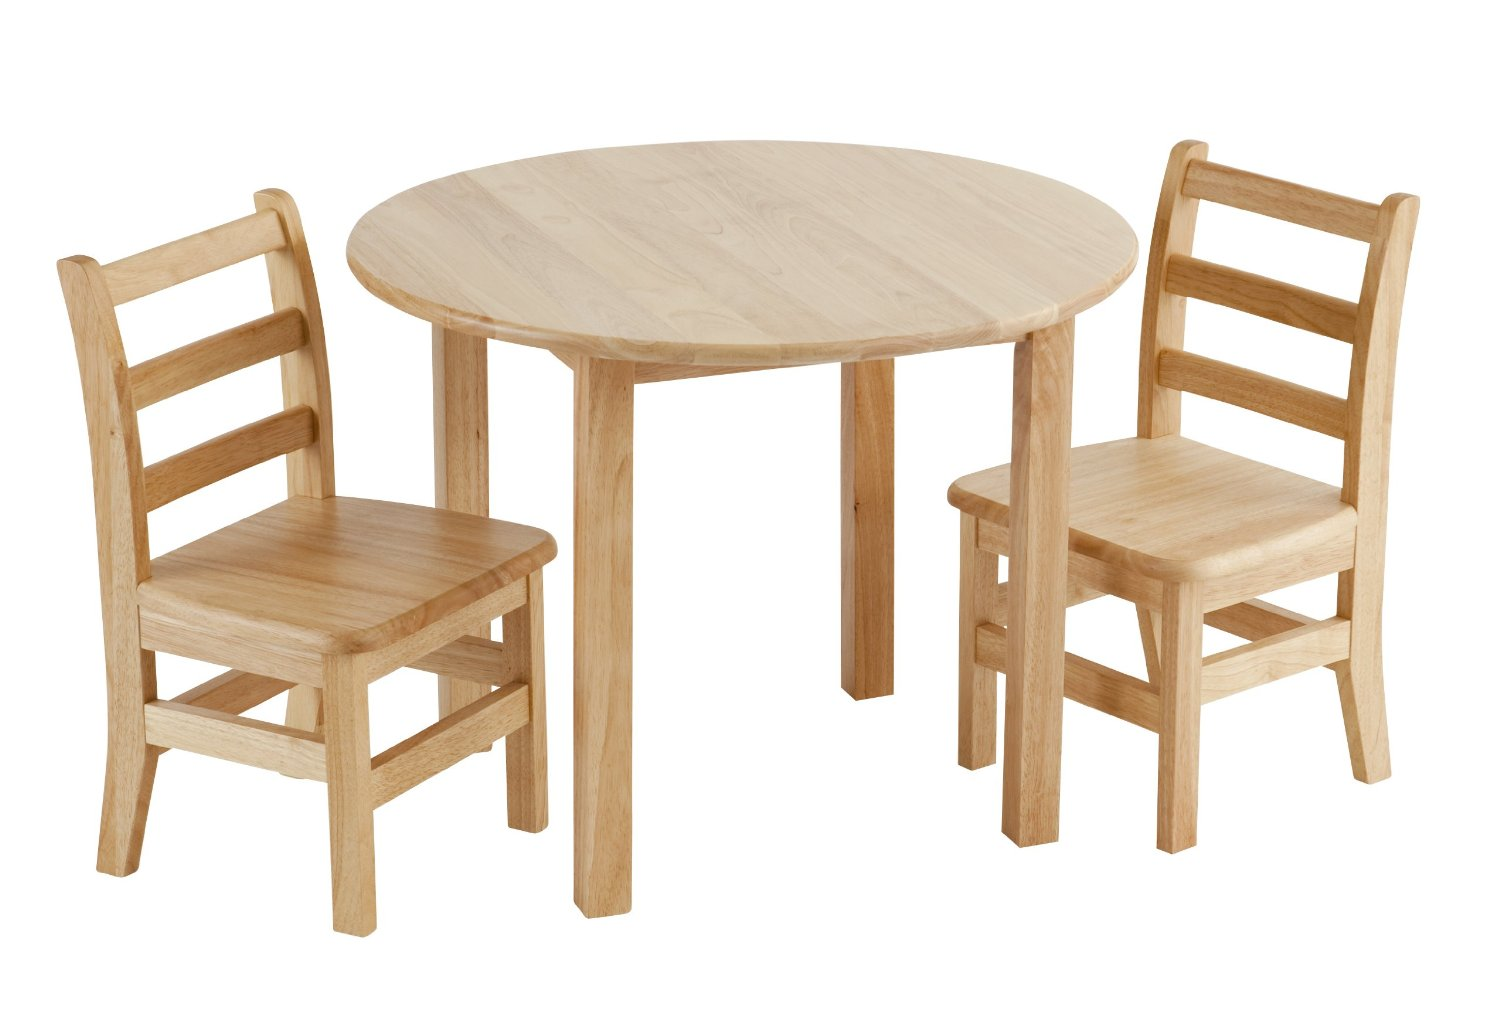 Kids Wooden Table And Chairs Game Tables And Chairs For Children Beautiful Home And